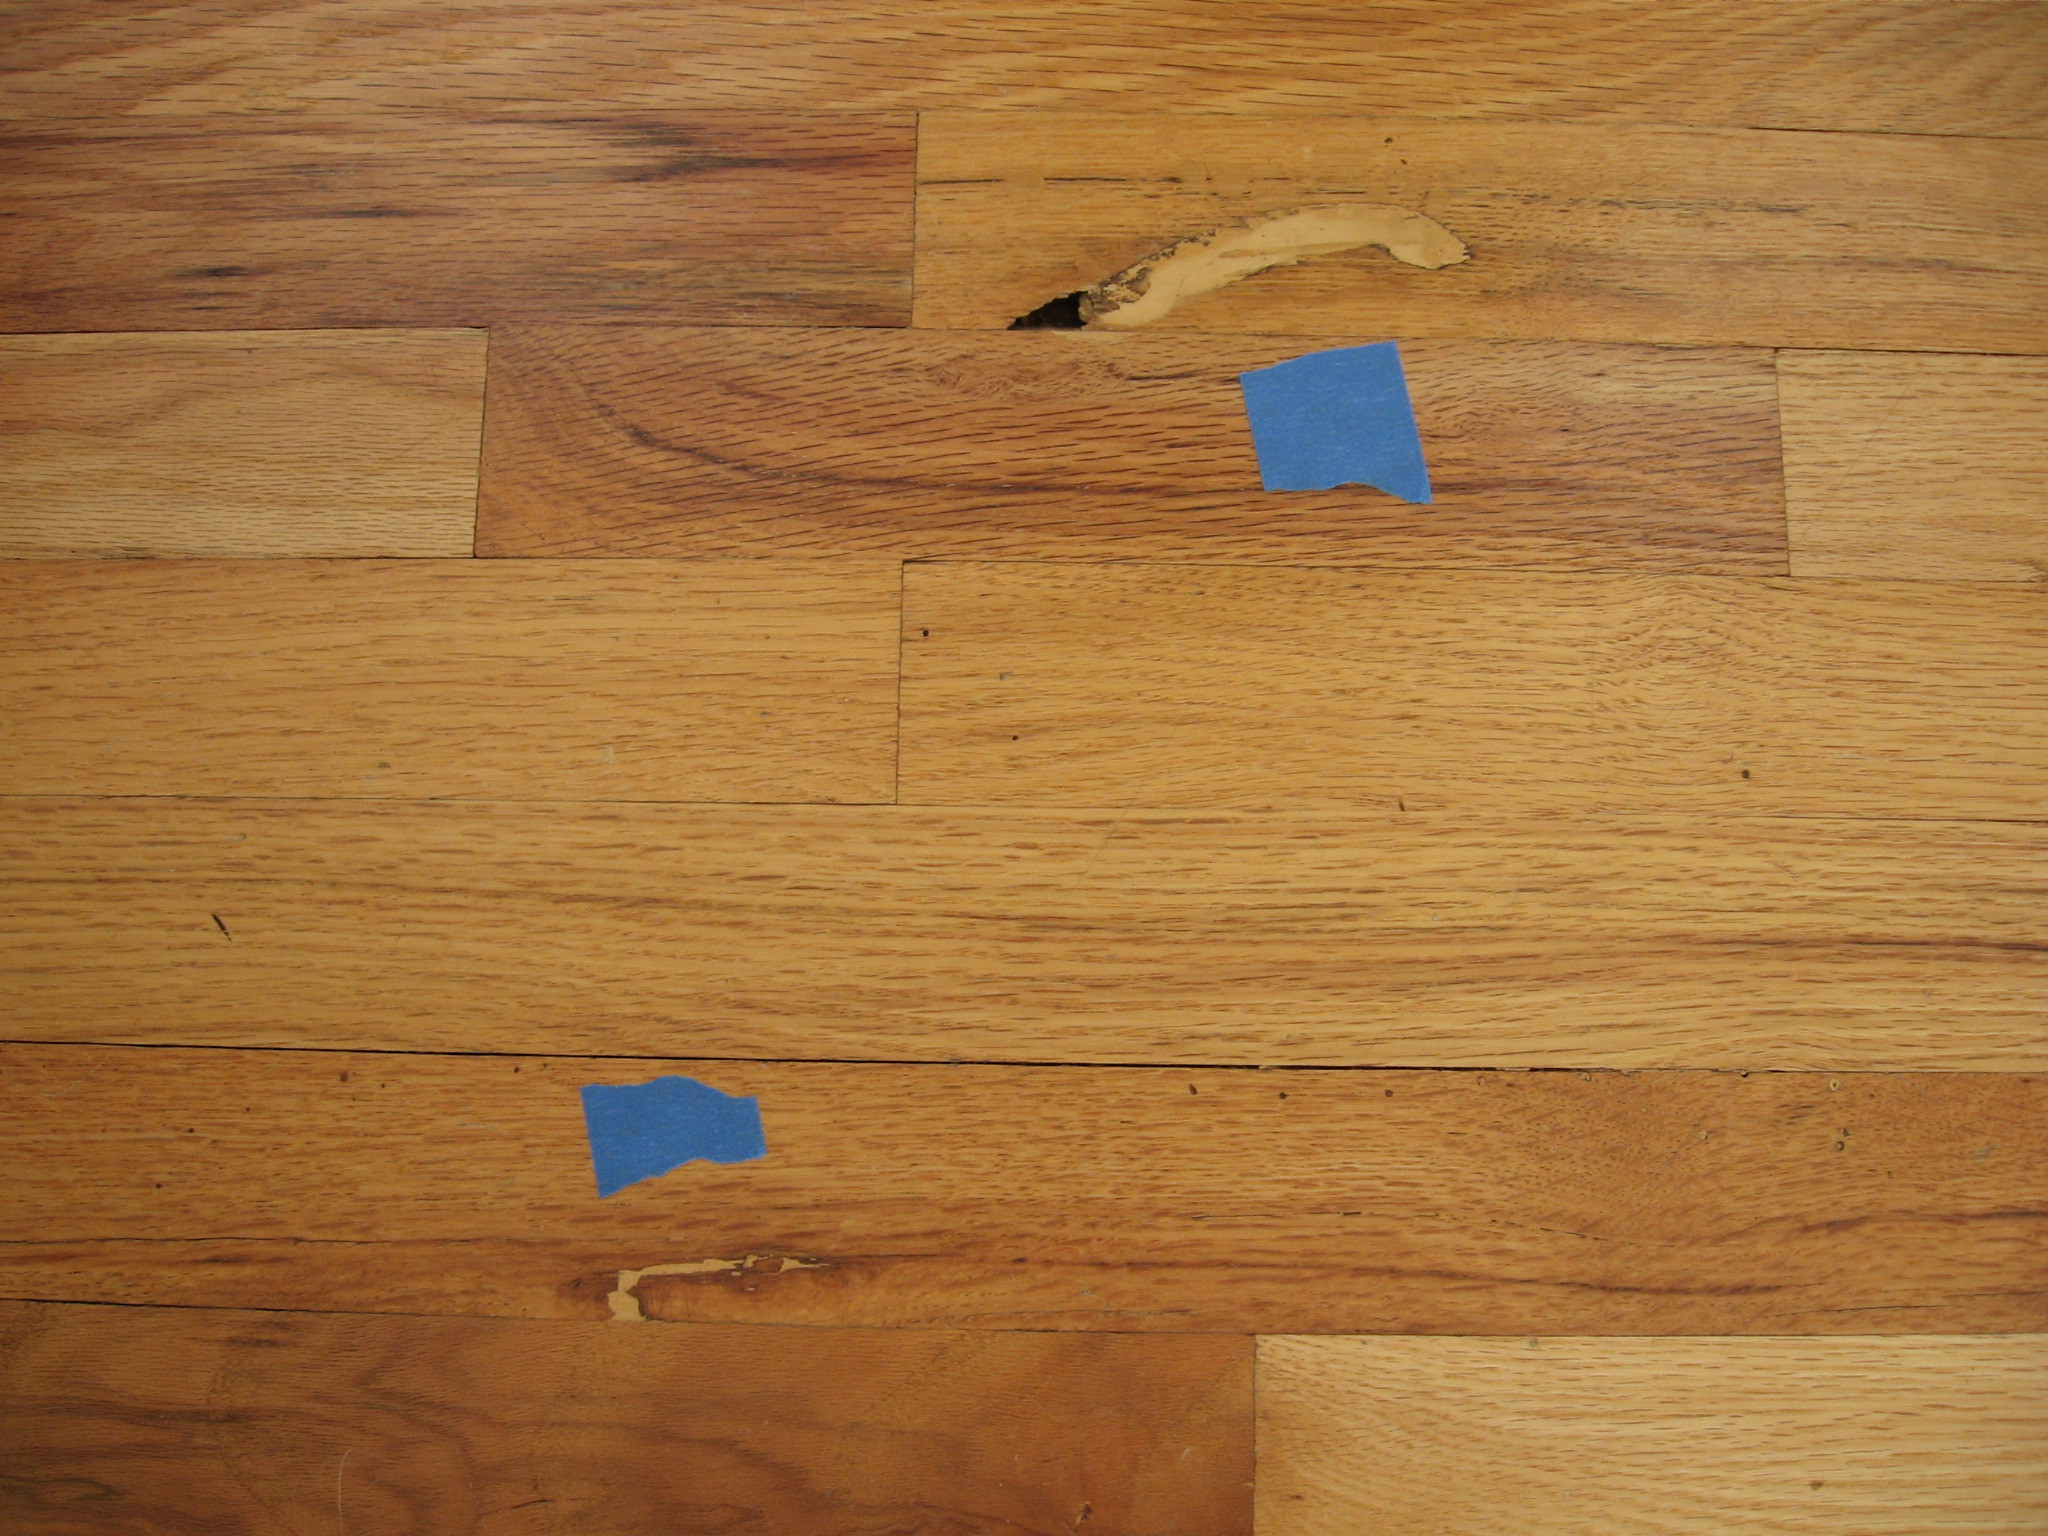 Hardwood Floor Wax Filler Of Wood Floor Techniques 101 with Regard to Filler Bad